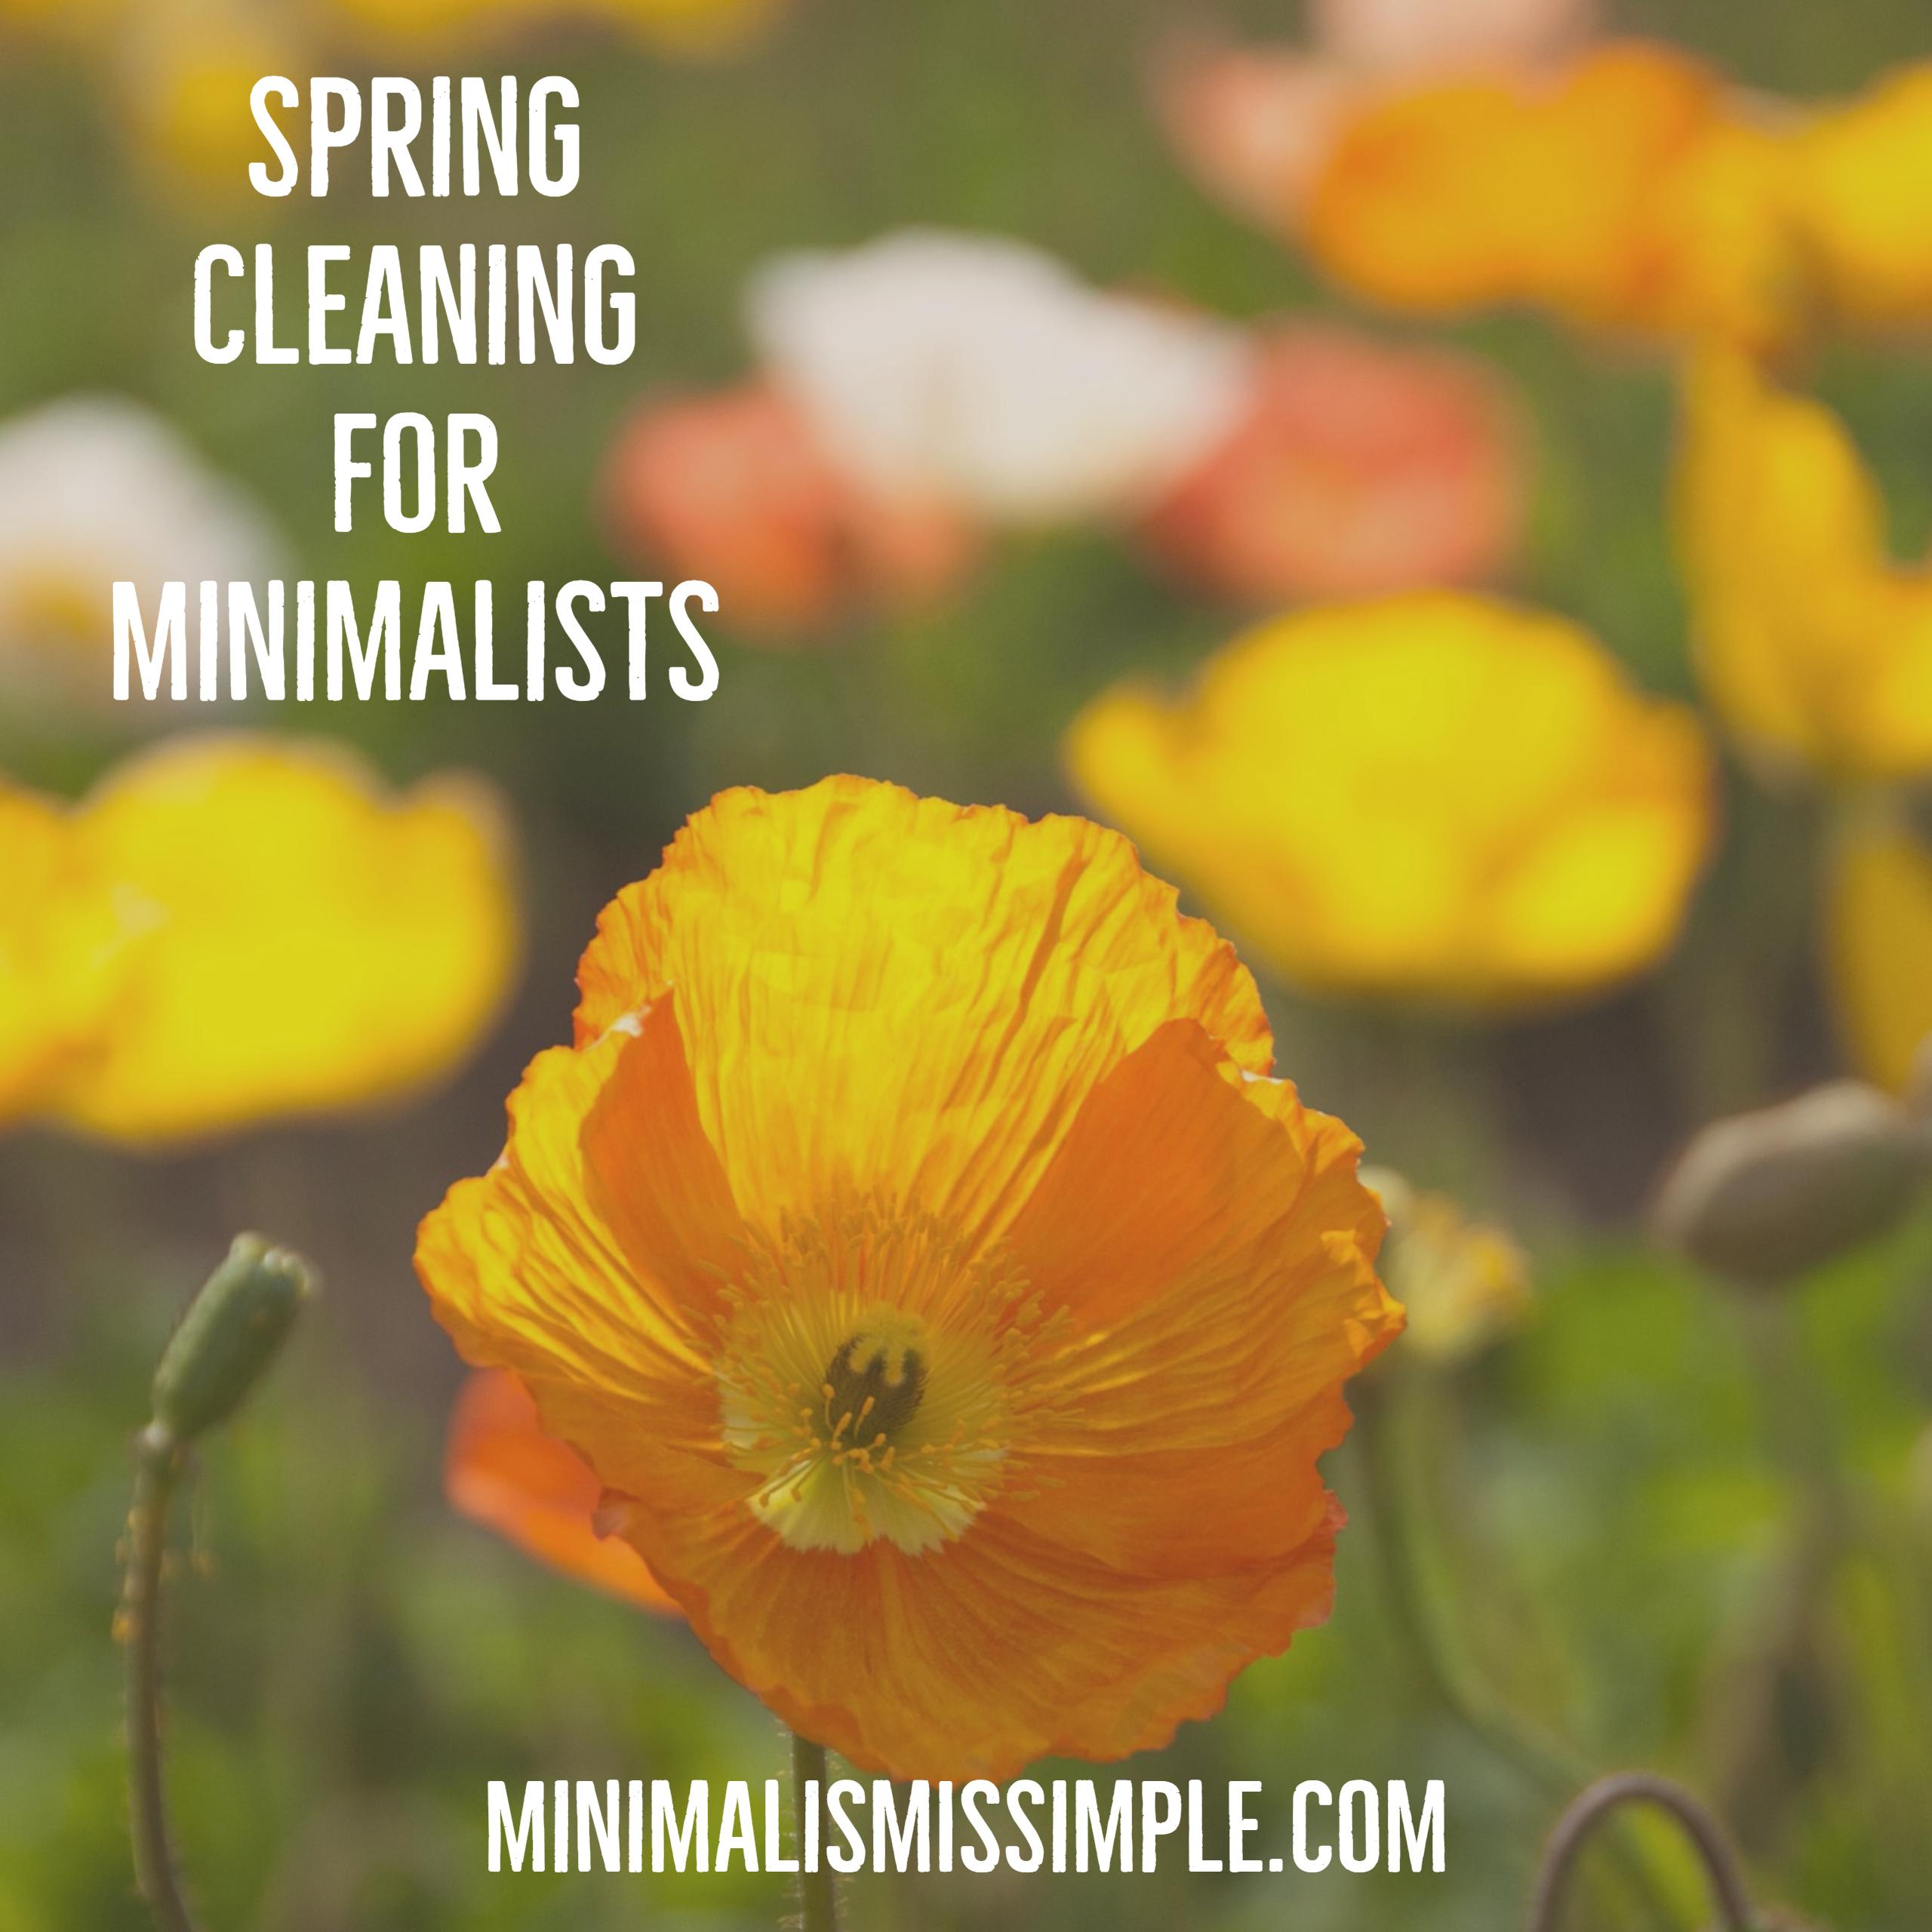 spring cleaning for minimalists minimalismissimple.com